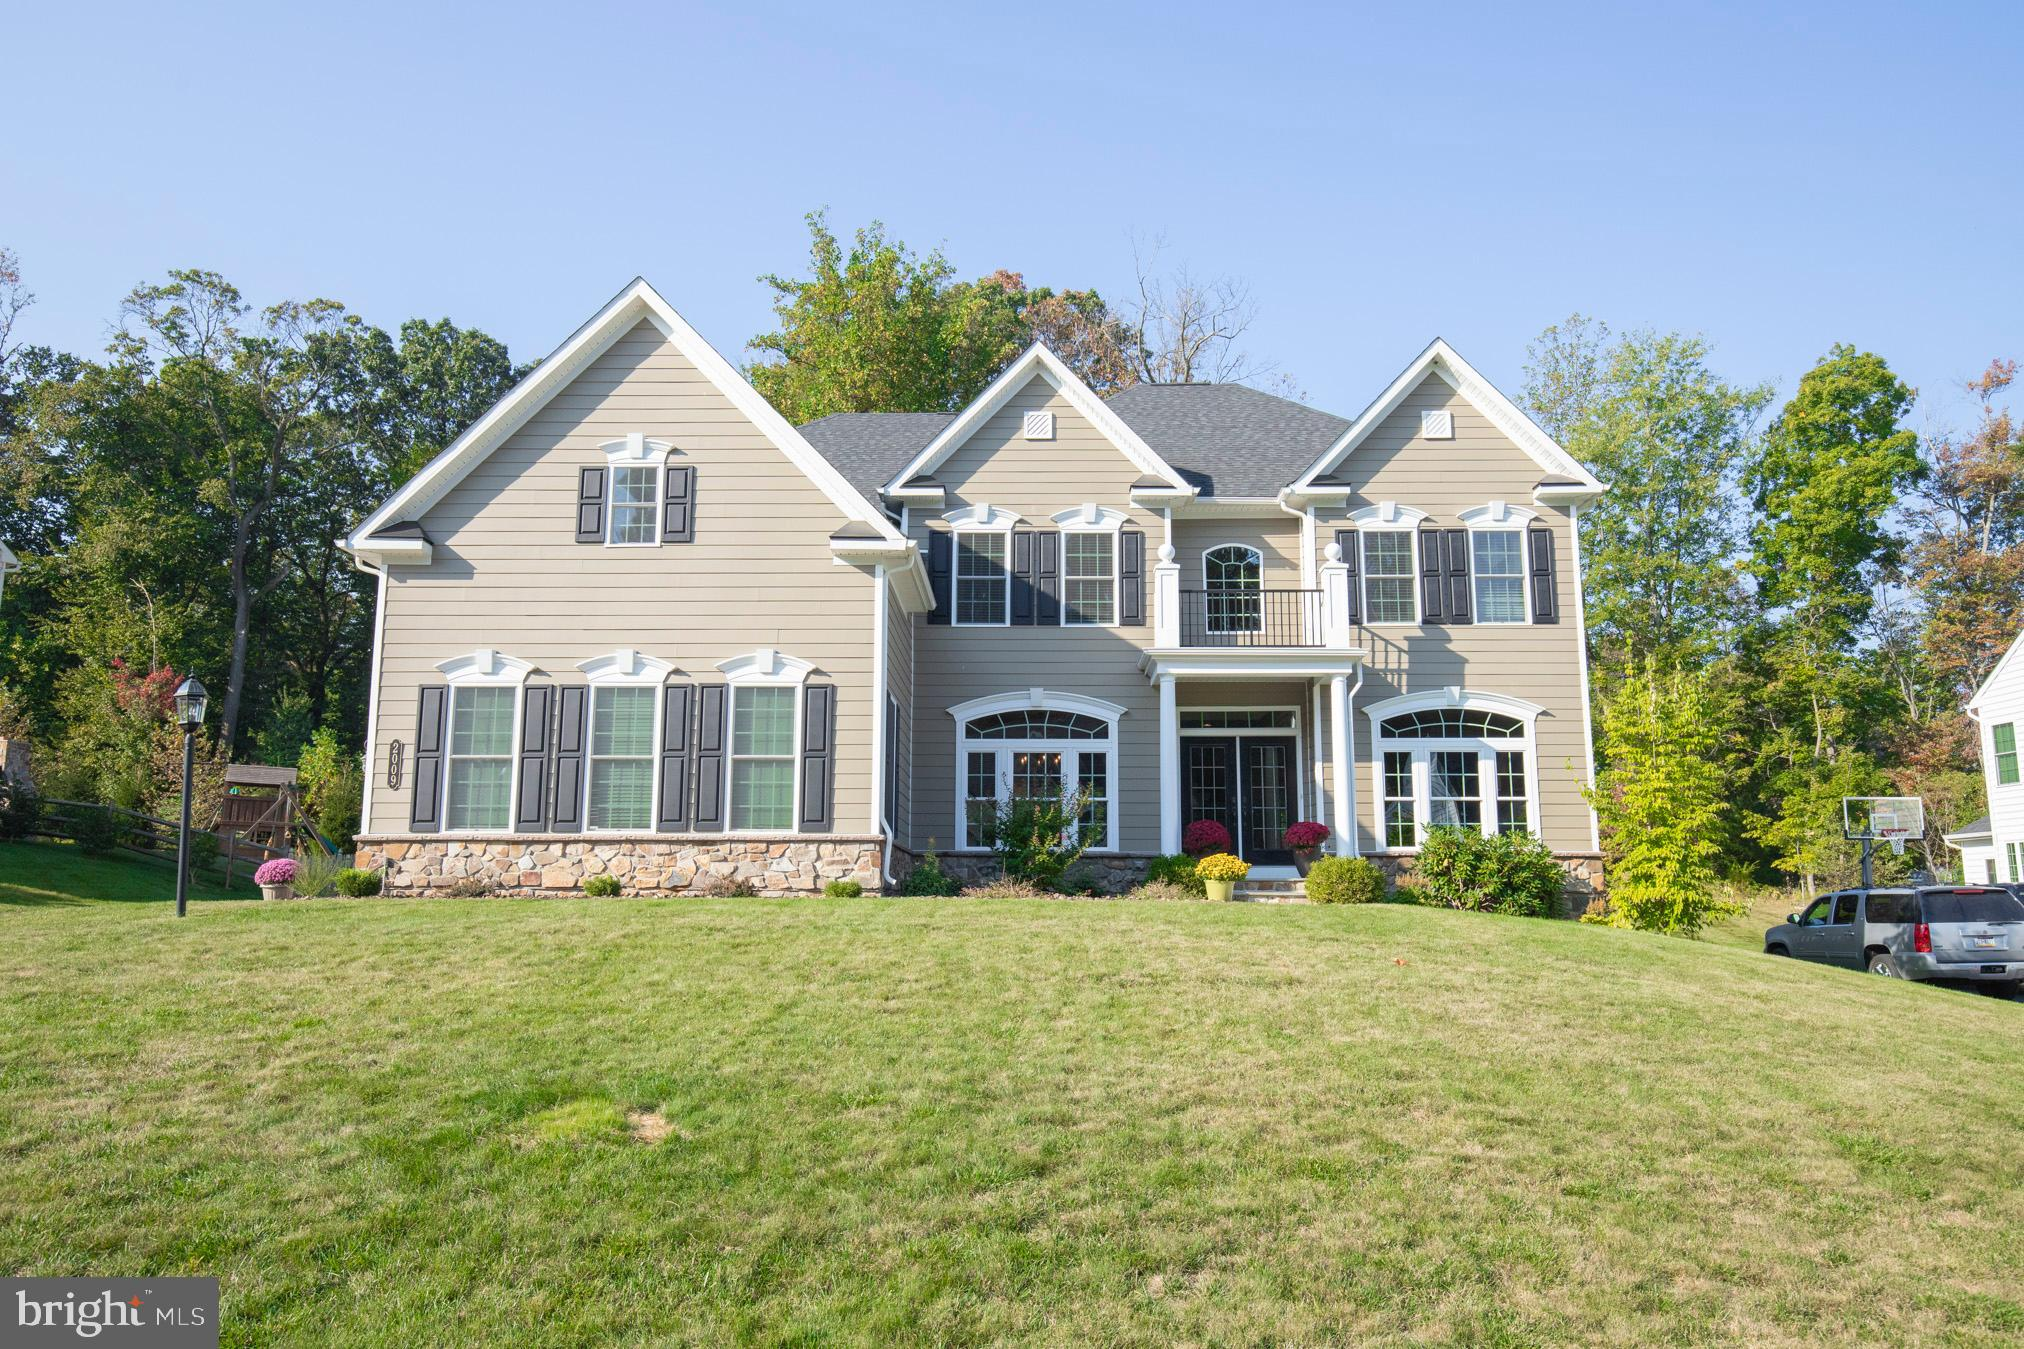 2009 WRANGLEY COURT, WEST CHESTER, PA 19380